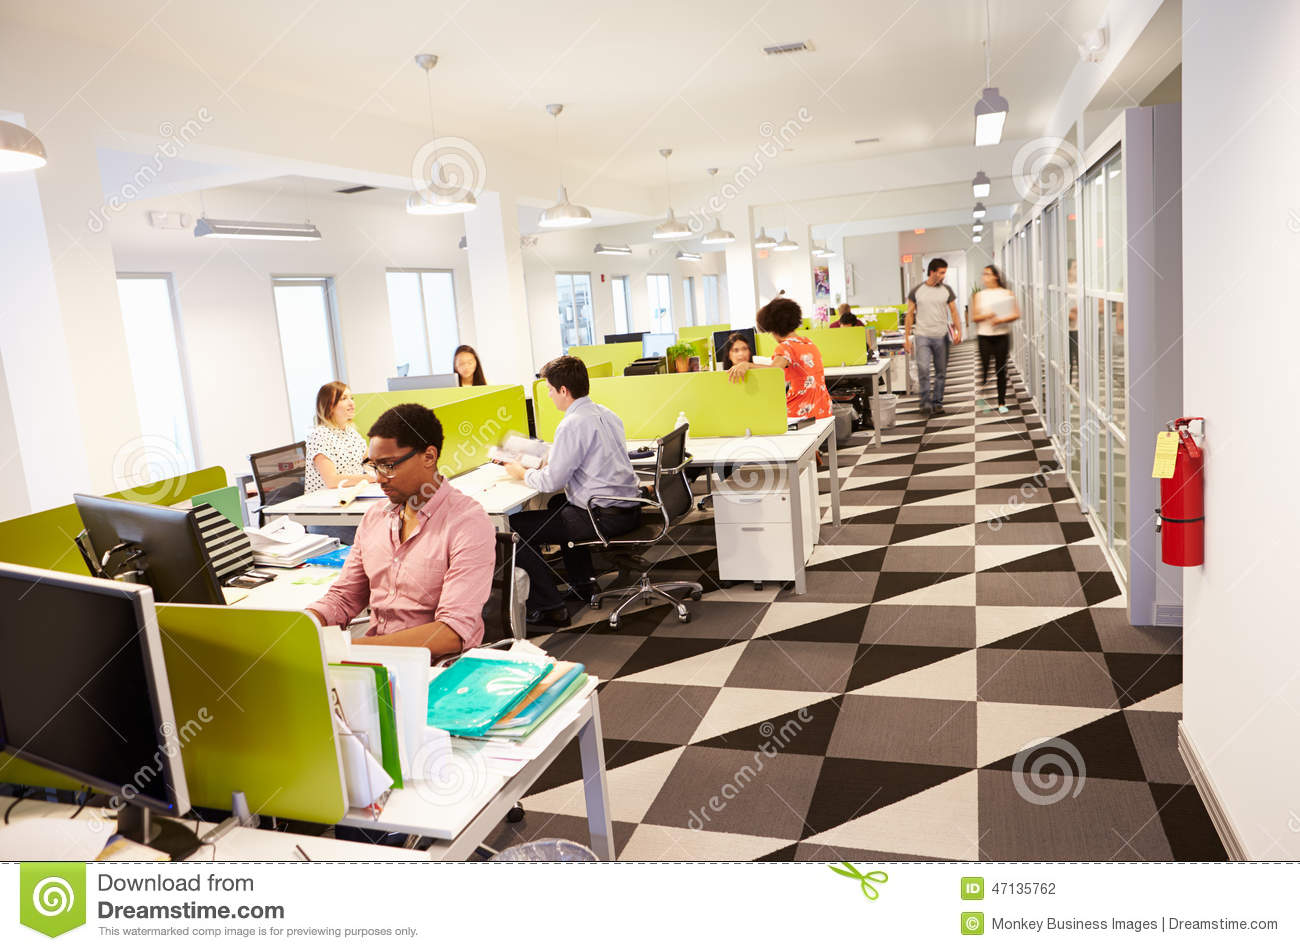 Interior Of Busy Modern Design Office Stock Photo - Image: 47135762